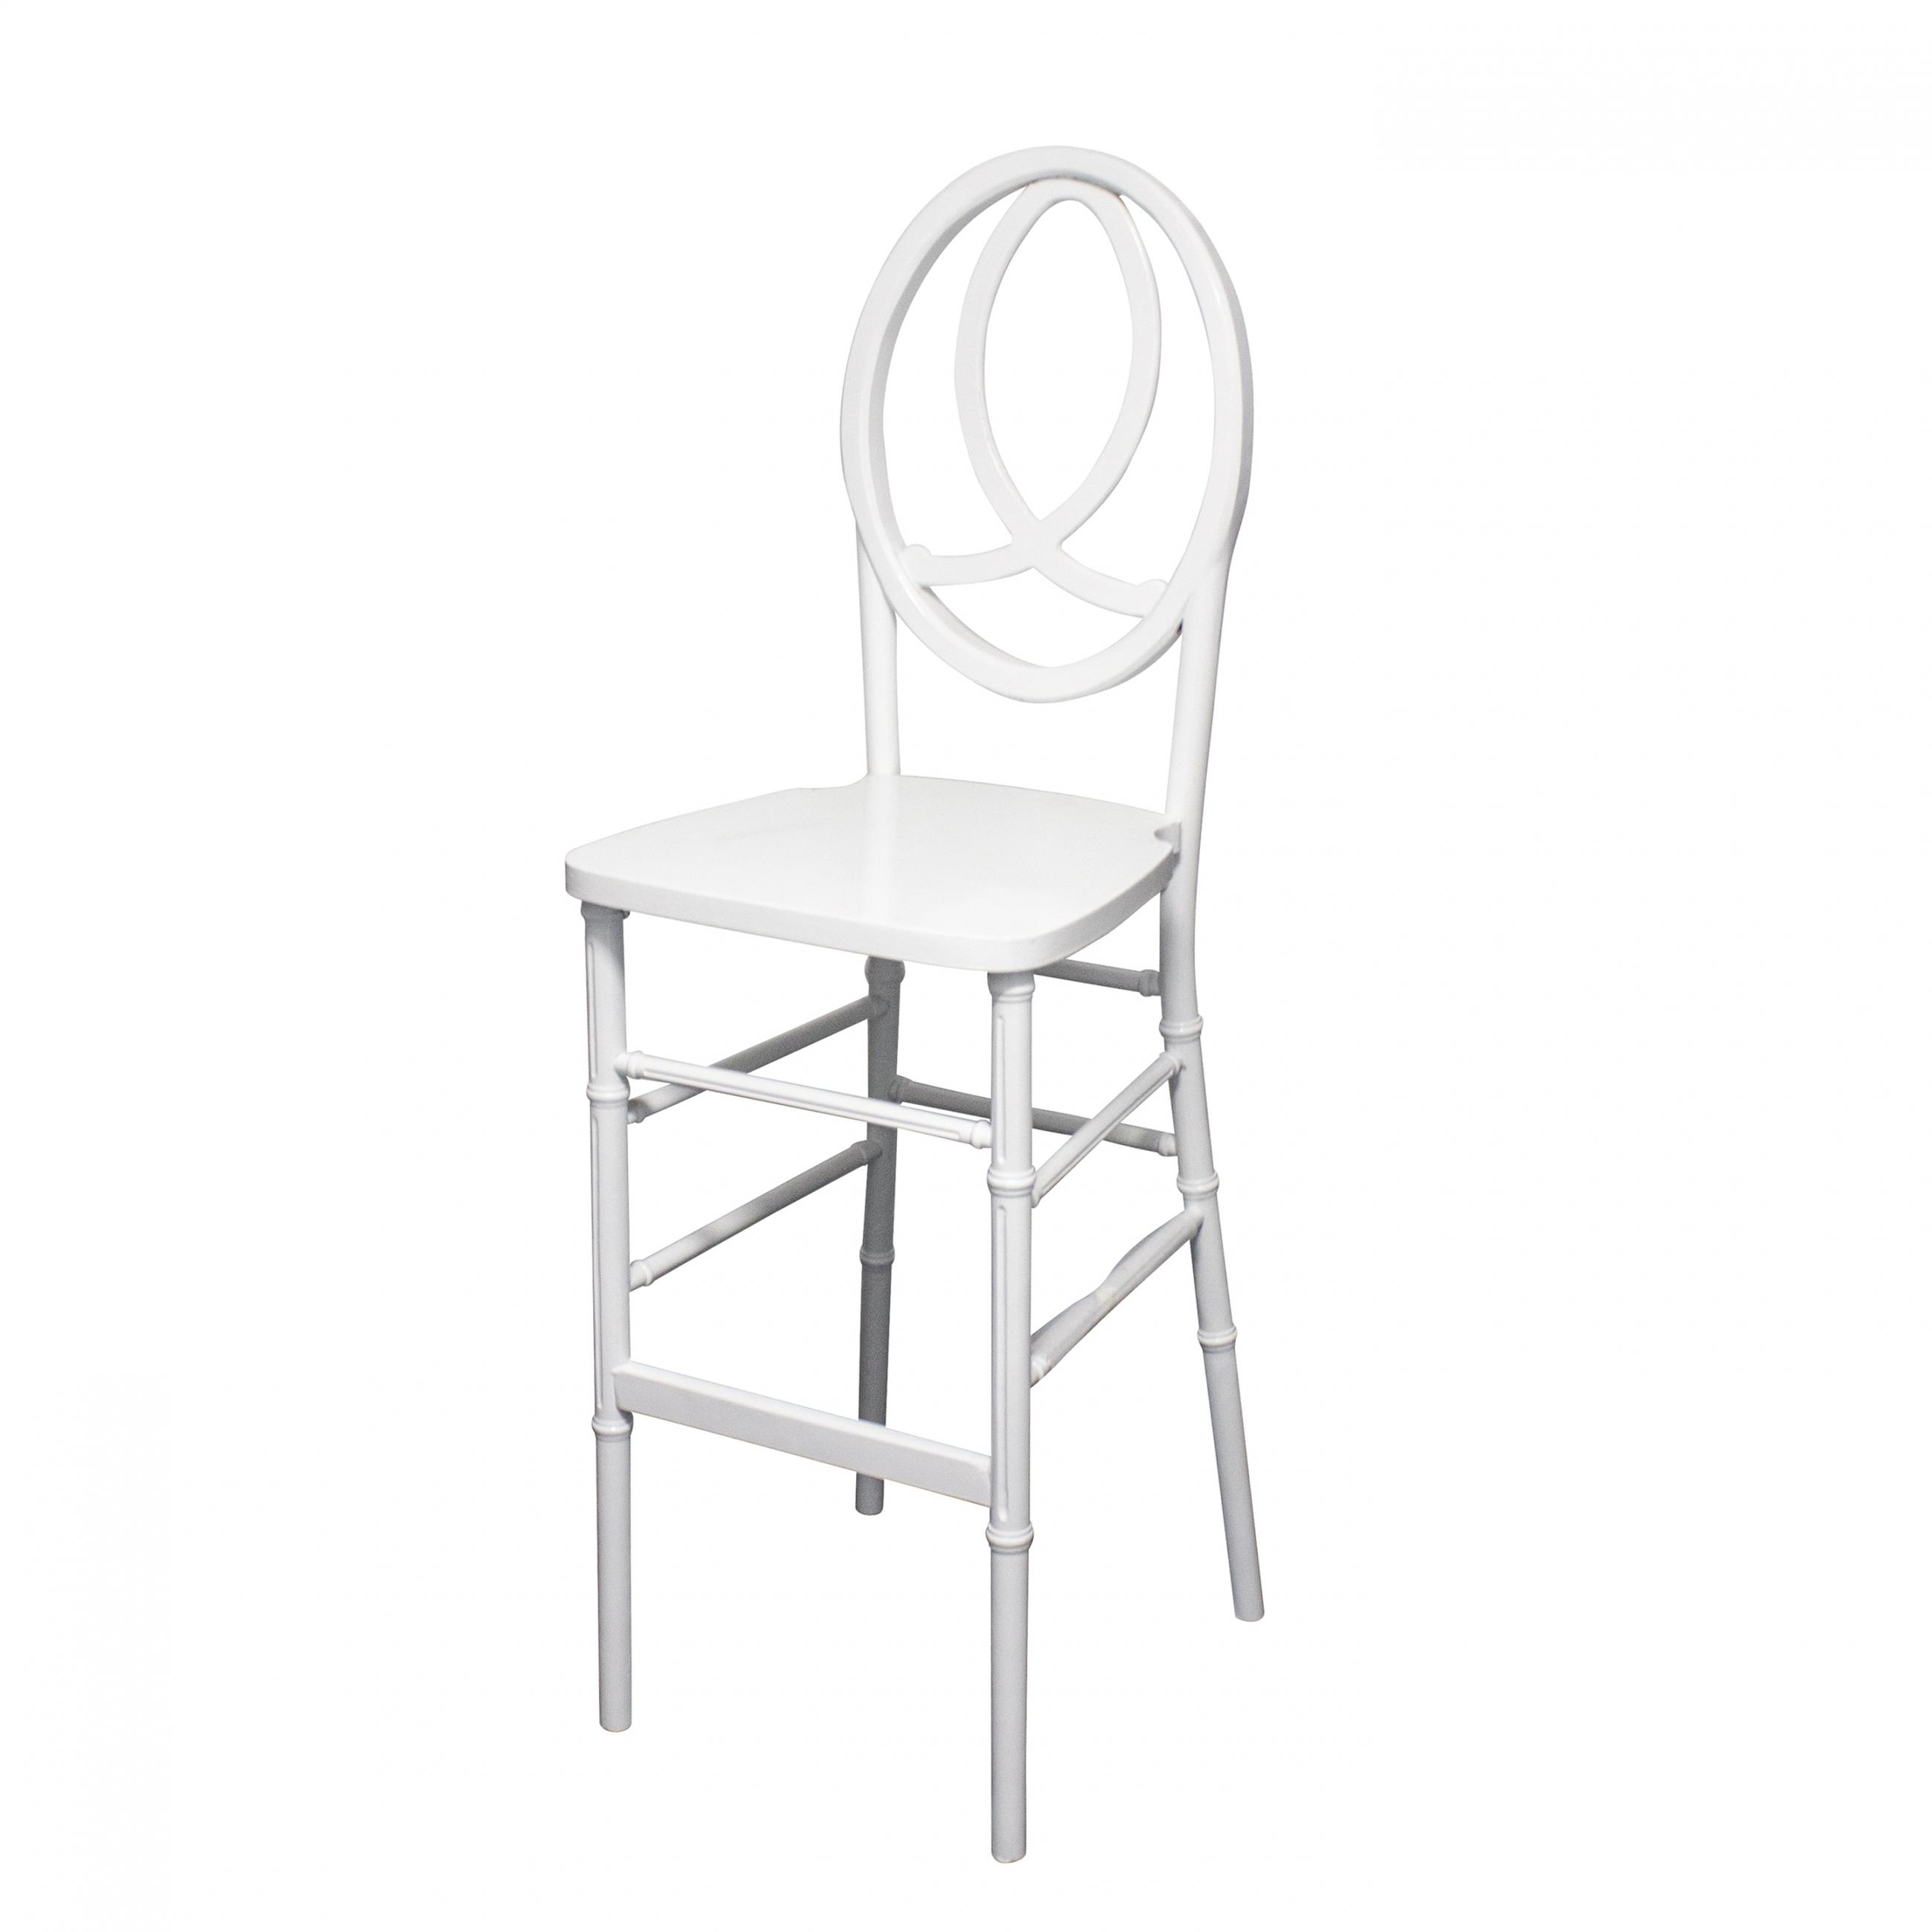 Sensational Barstool Infinity White Peak Event Services Lamtechconsult Wood Chair Design Ideas Lamtechconsultcom